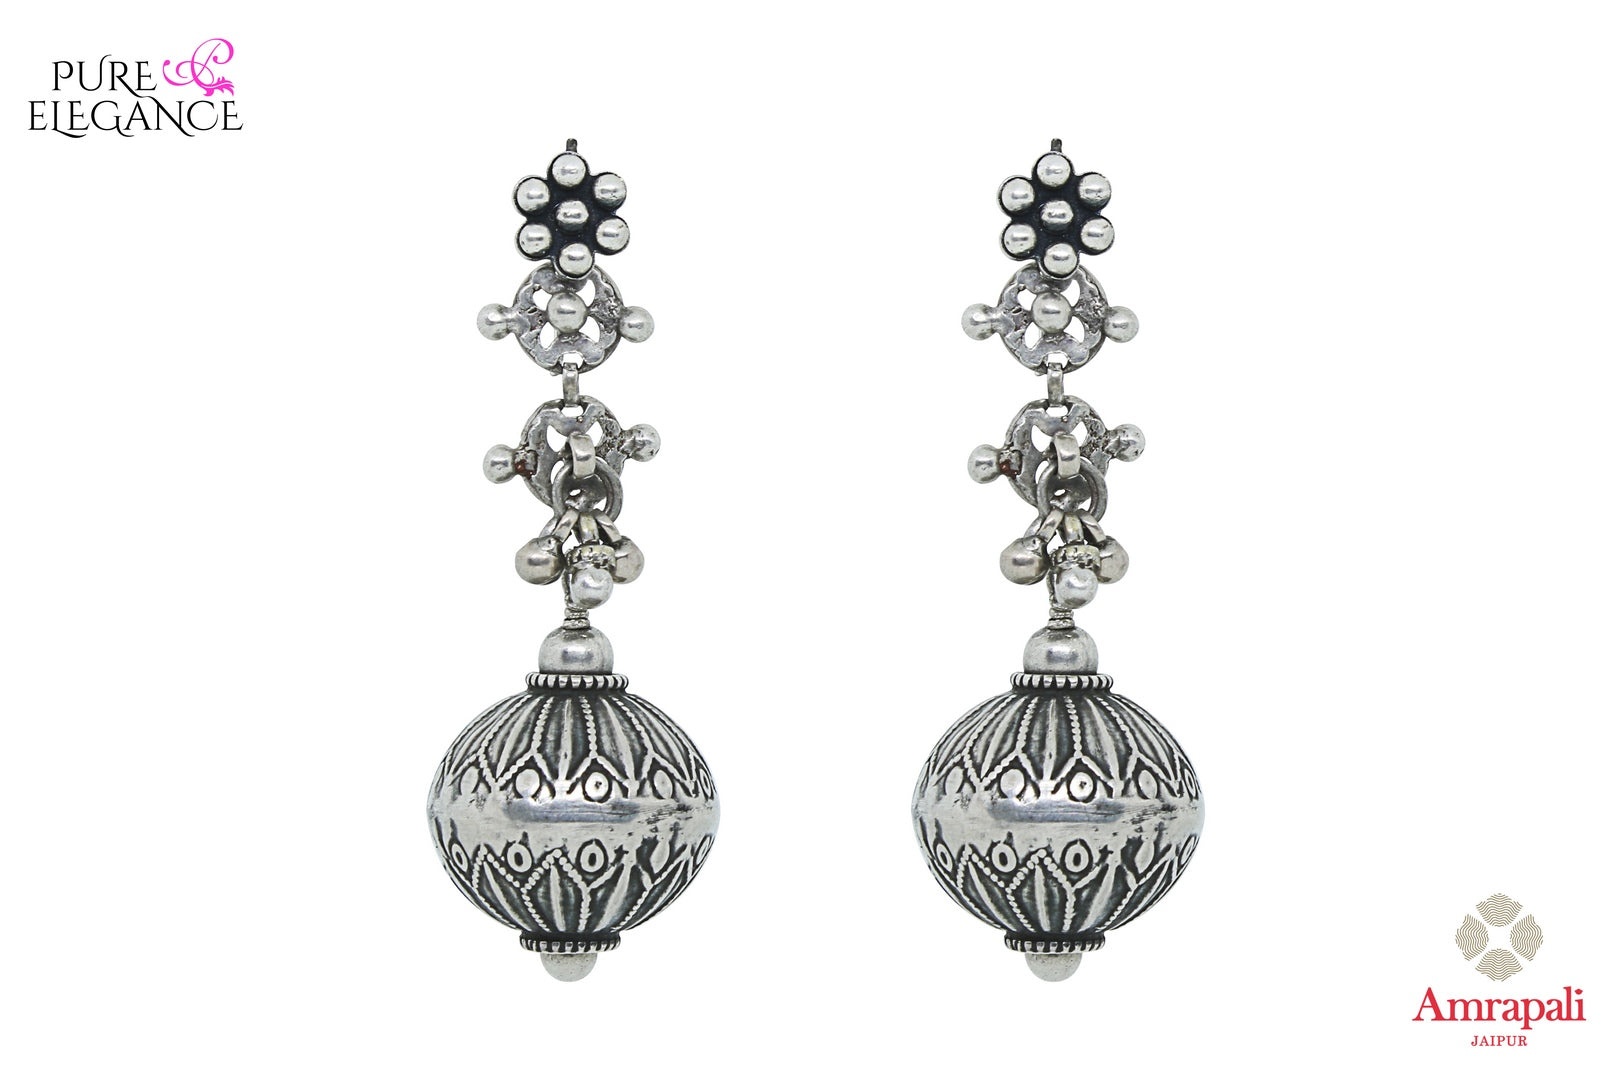 Buy Silver Floral Textured Hanging Ball Earrings online in USA from Amrapali.  If you are looking for Indian silver earrings in USA, then Pure Elegance Indian fashion store is the place for you. A whole range of exquisite of ethnic Indian jewelry is waiting for you on our shelves, you can also opt to shop online.-full view